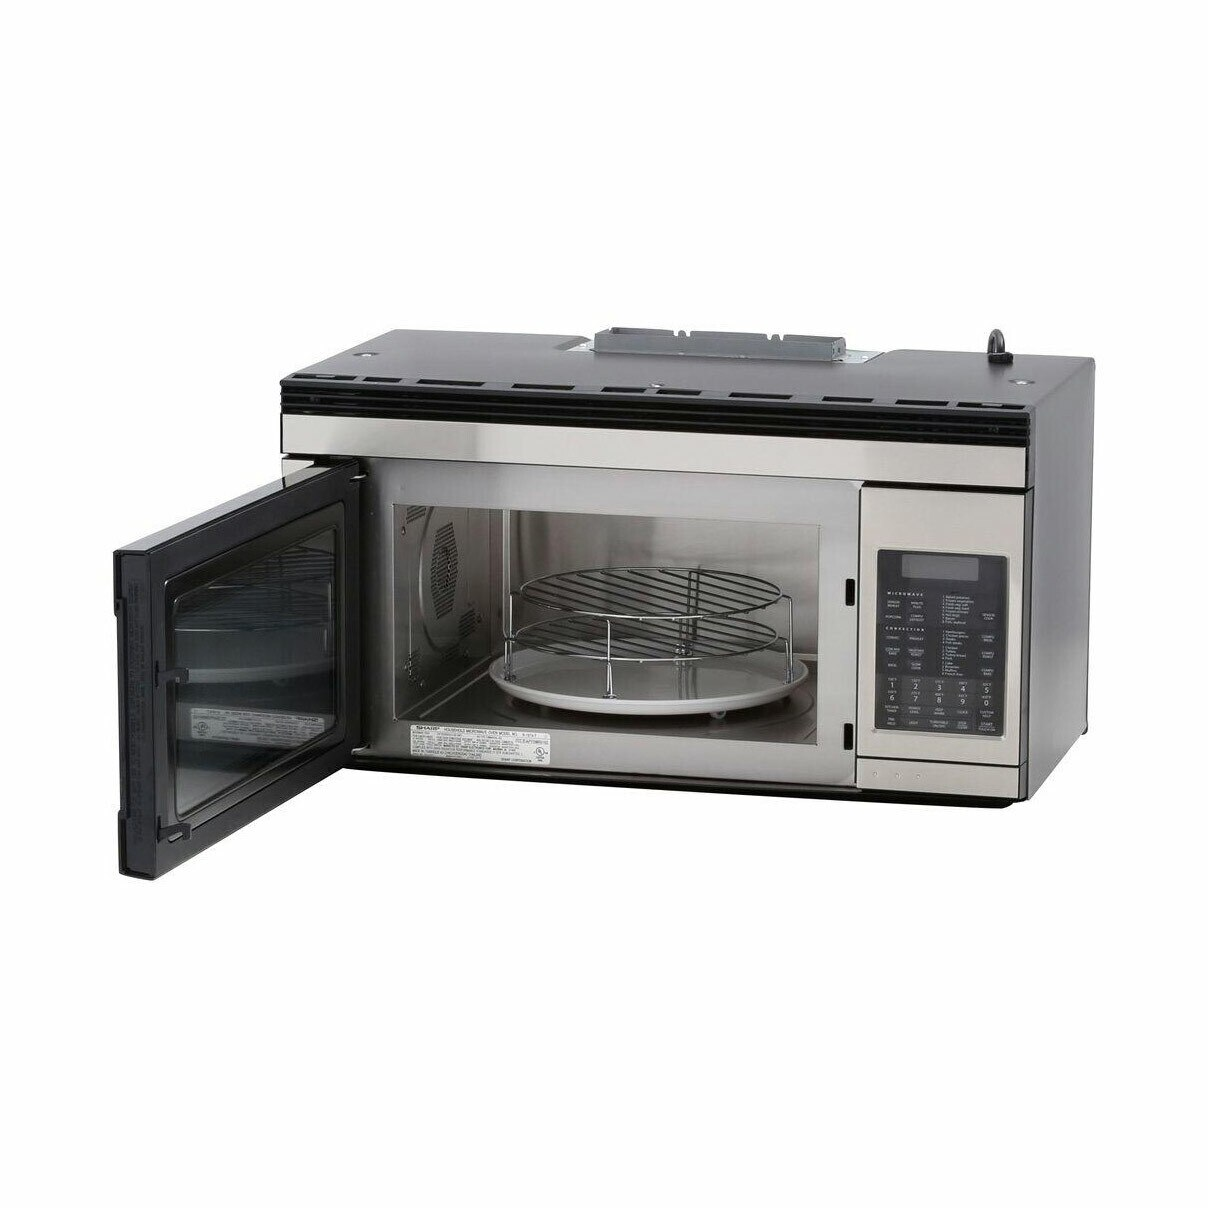 1.1 cu. ft. 850W Sharp Stainless Steel Over-the-Range Convection Microwave (R1874TY) – left angle view with door open